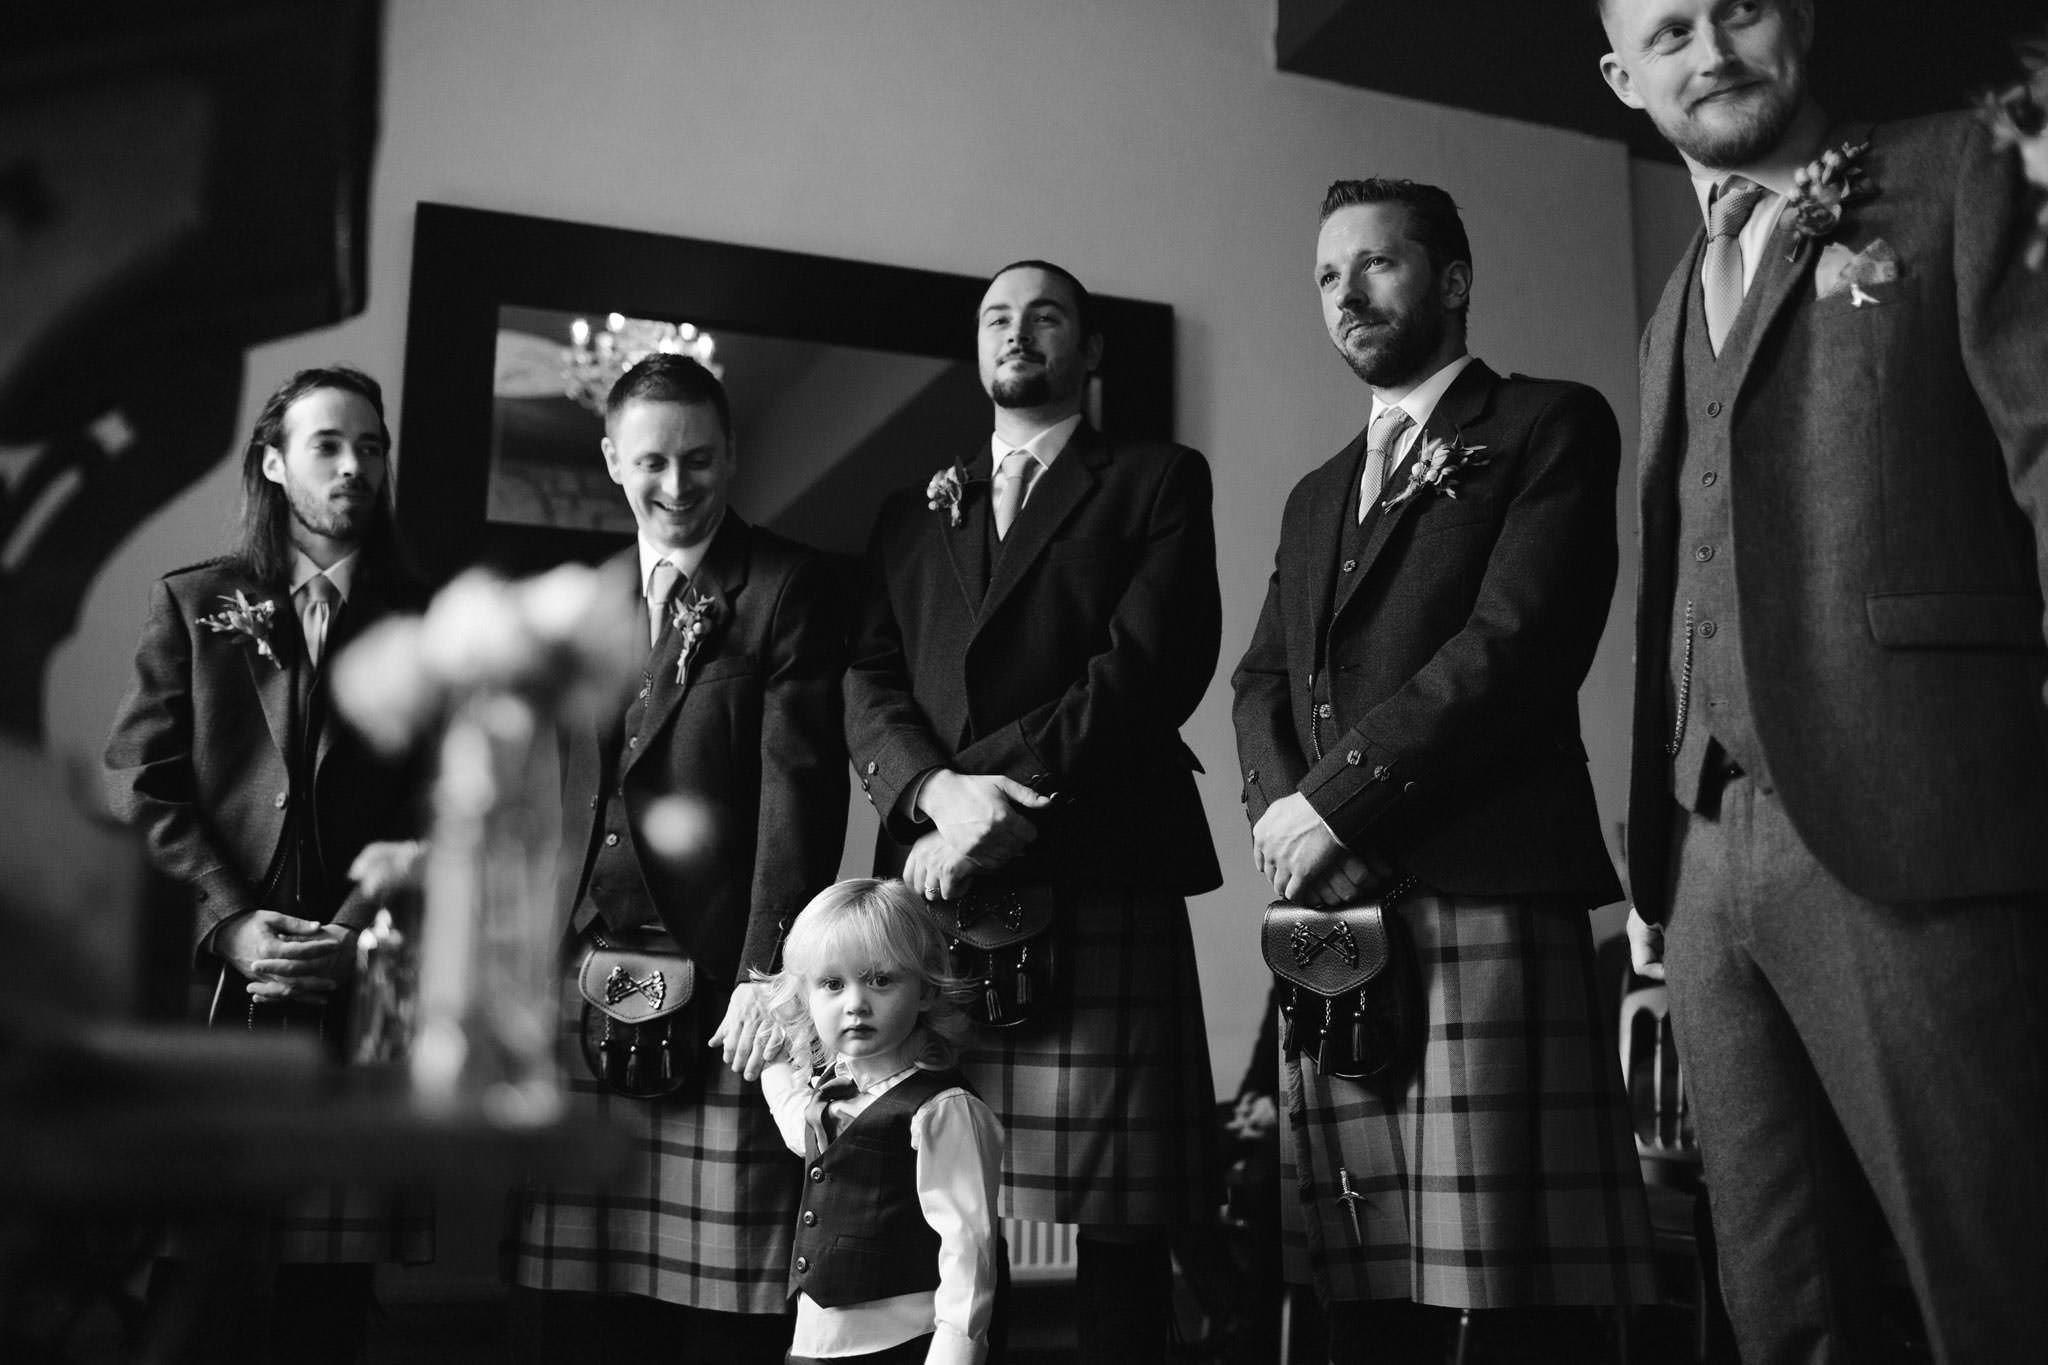 scottish-wedding-photographer-052